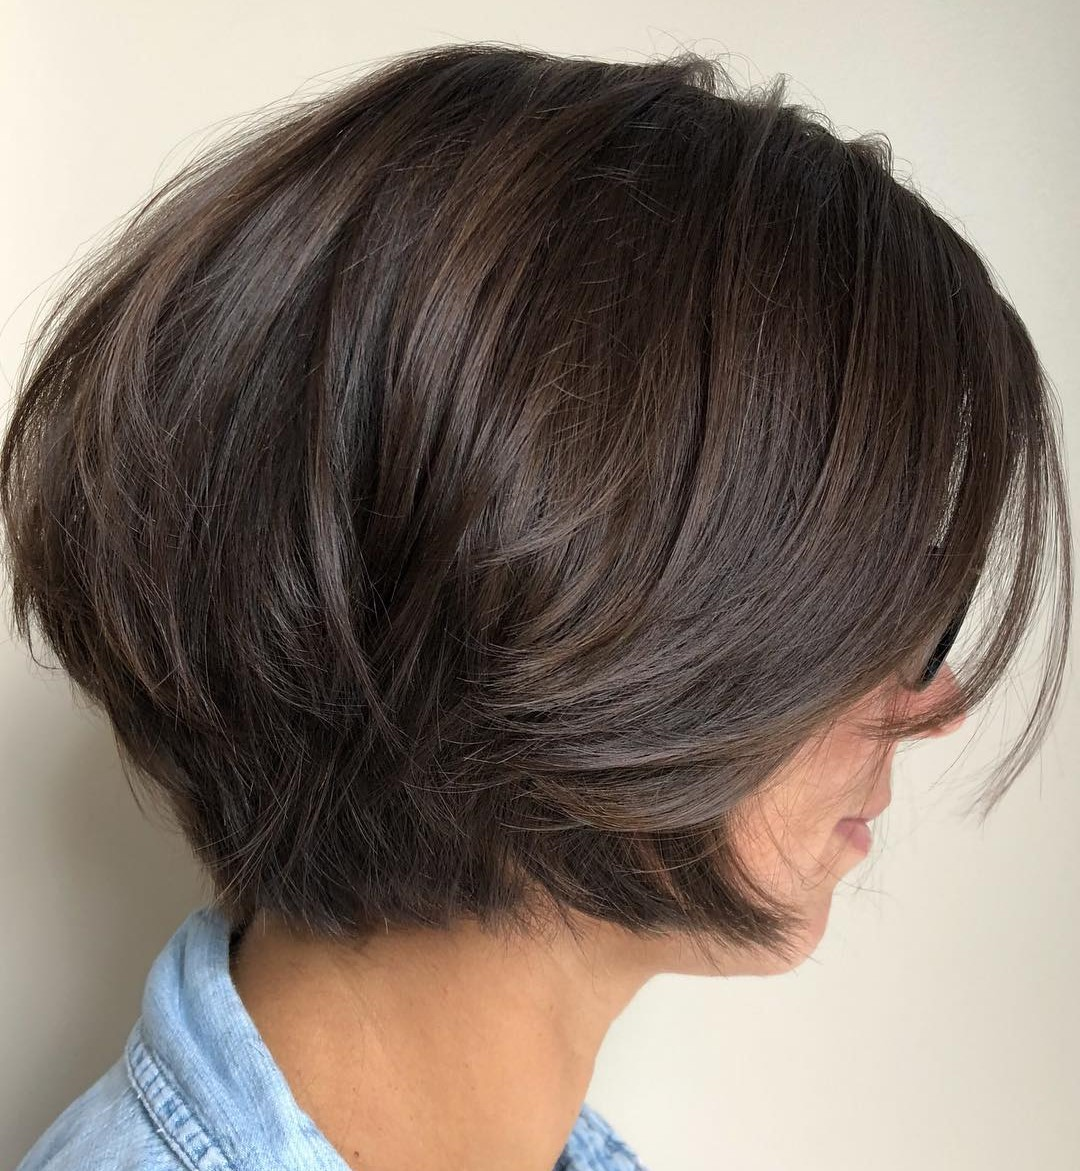 40 Short Hairstyles For Thick Hair Trendy In 2019 2020